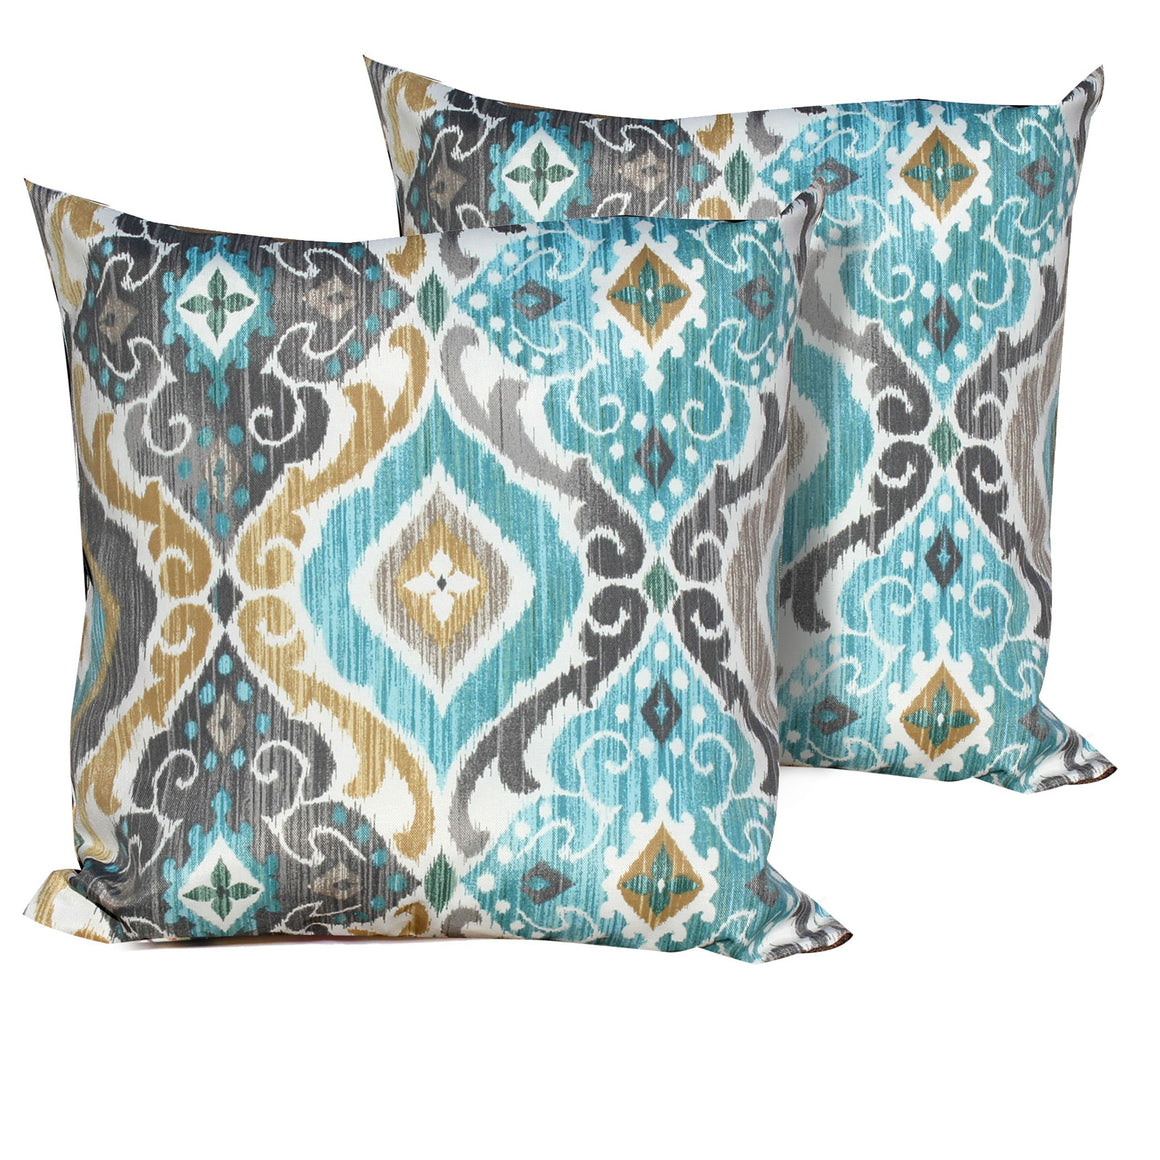 Persian Mist Outdoor Throw Pillows Square Set of 2 , TK Classics- grayburd